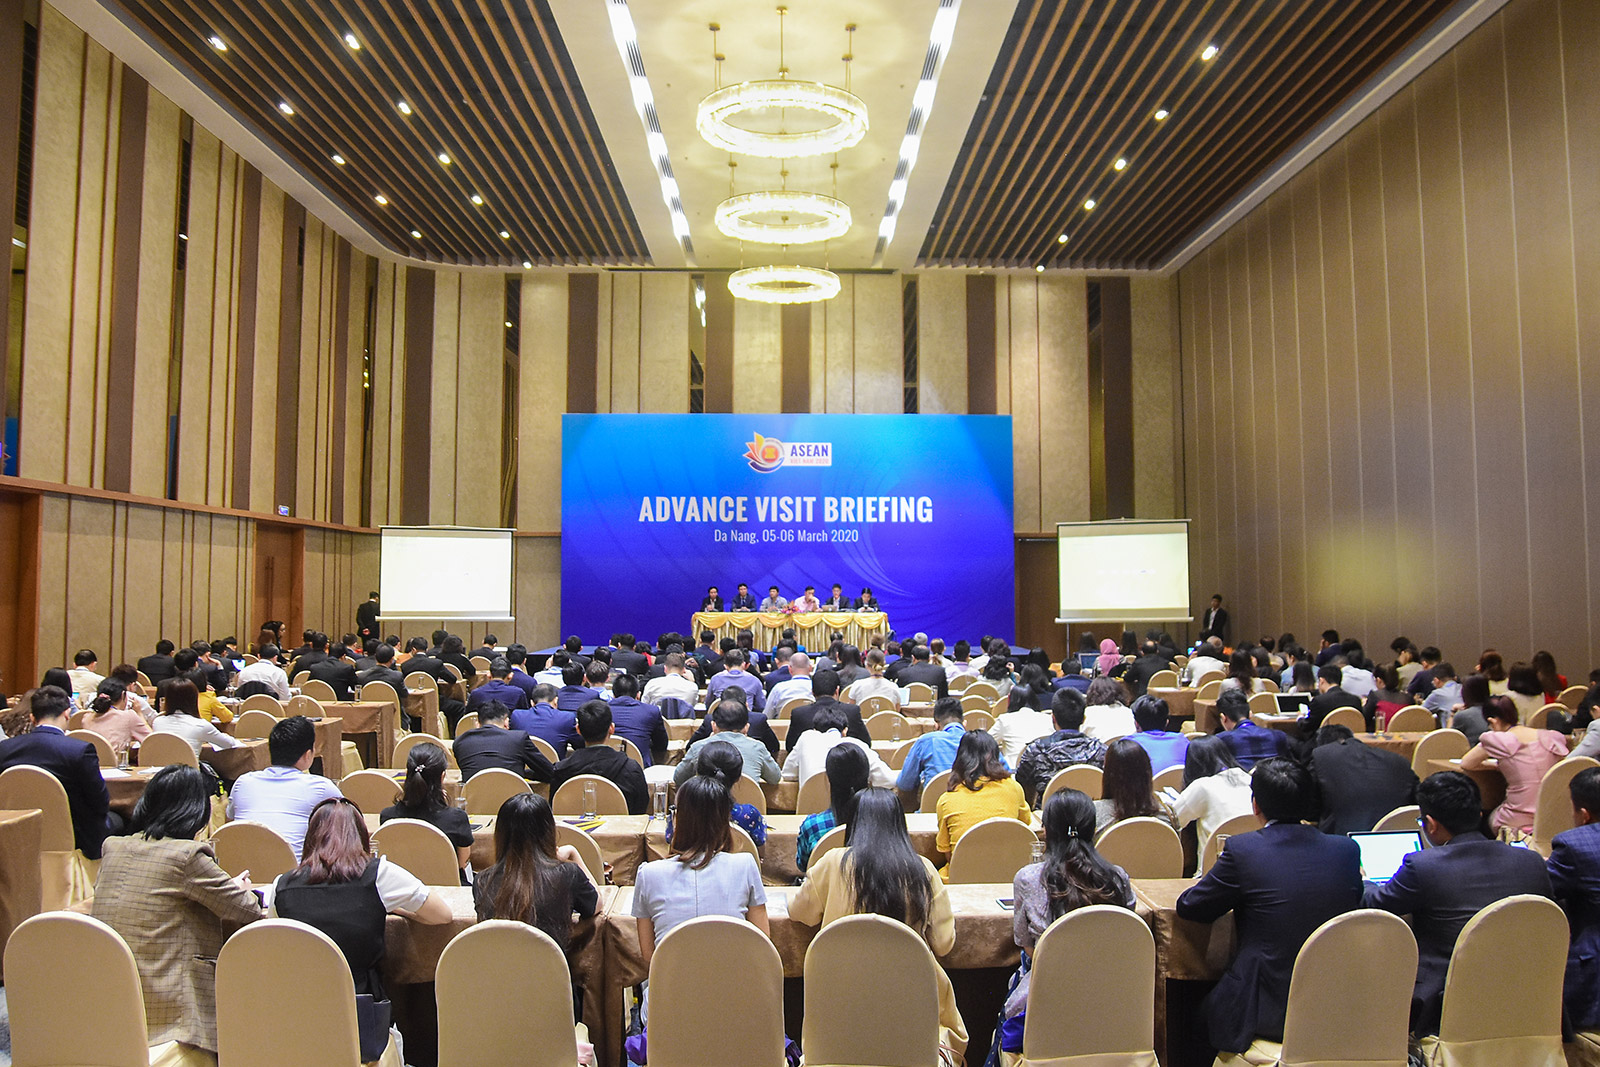 2020 ASEAN SUMMITS IN DANANG: ADVANCE VISIT BRIEFING